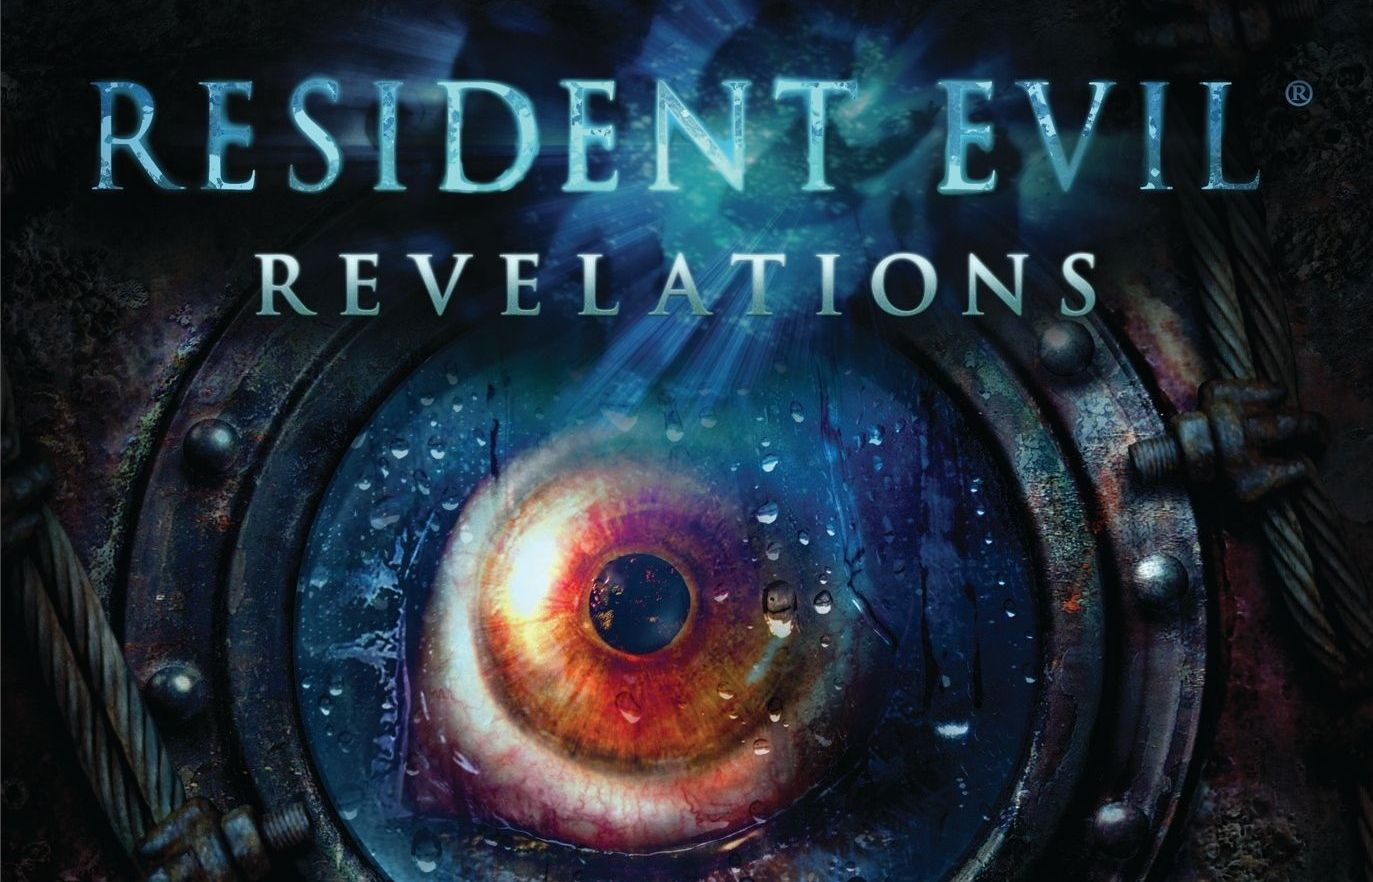 Zelda Hd Wallpaper Resident Evil Revelations Getting A Ps4 Amp Xbox One Release